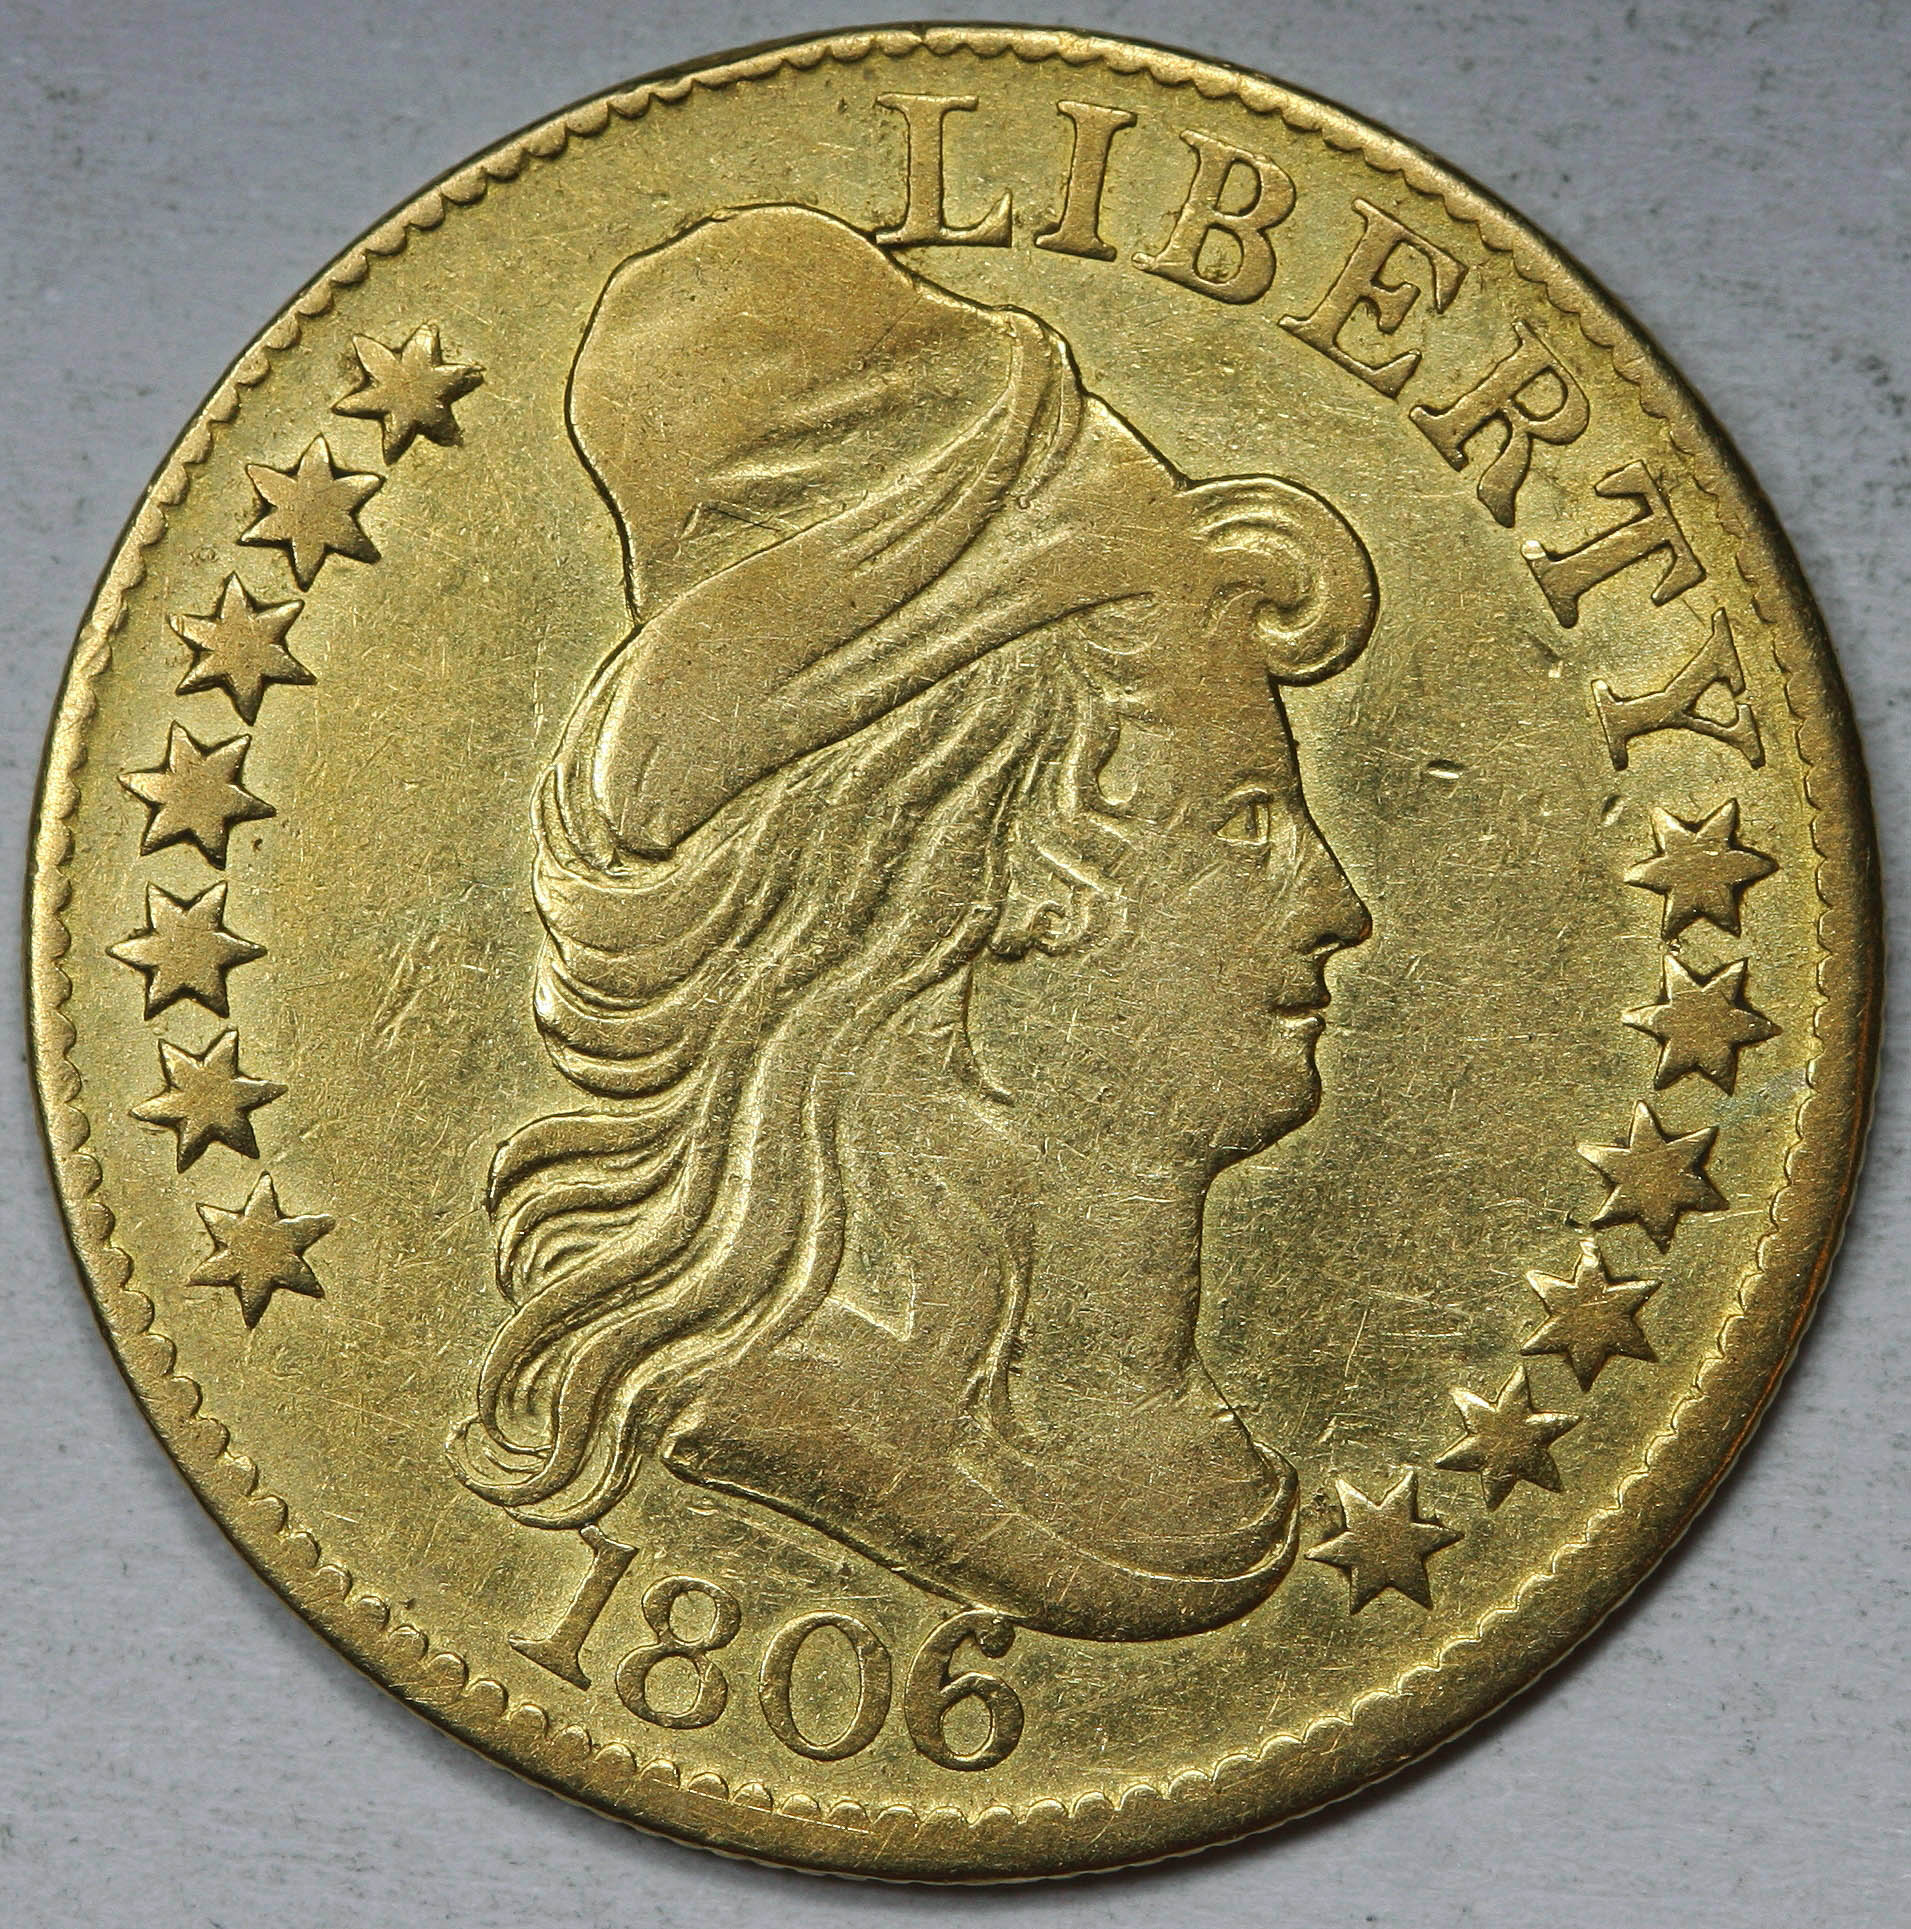 1806 $5 Gold